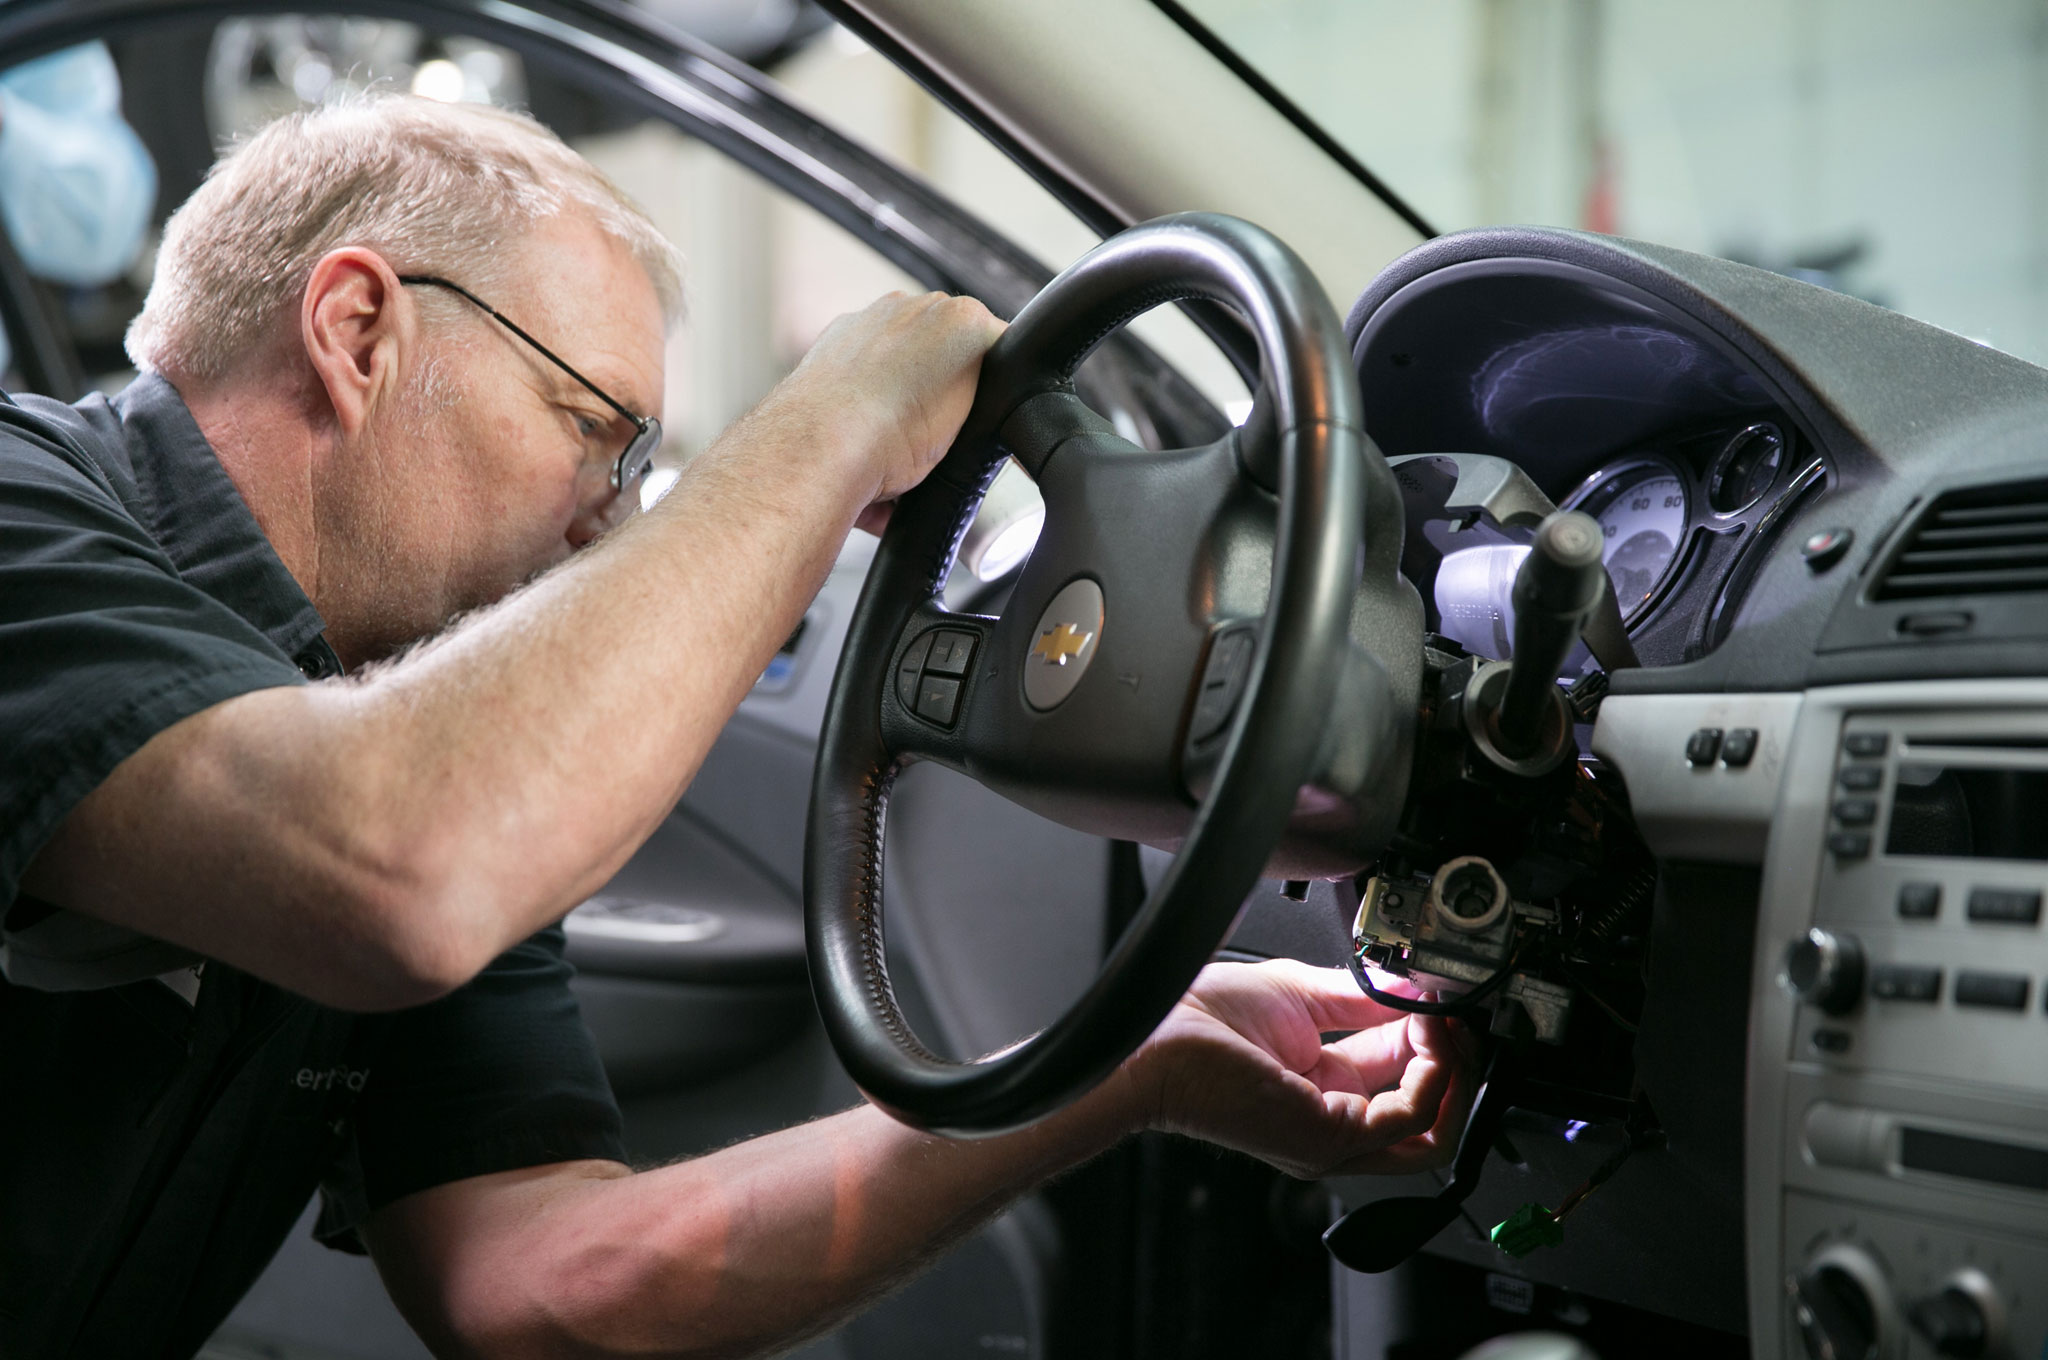 GM Shipping Replacement Ignition Parts, Dealers Begin Recall Repairs